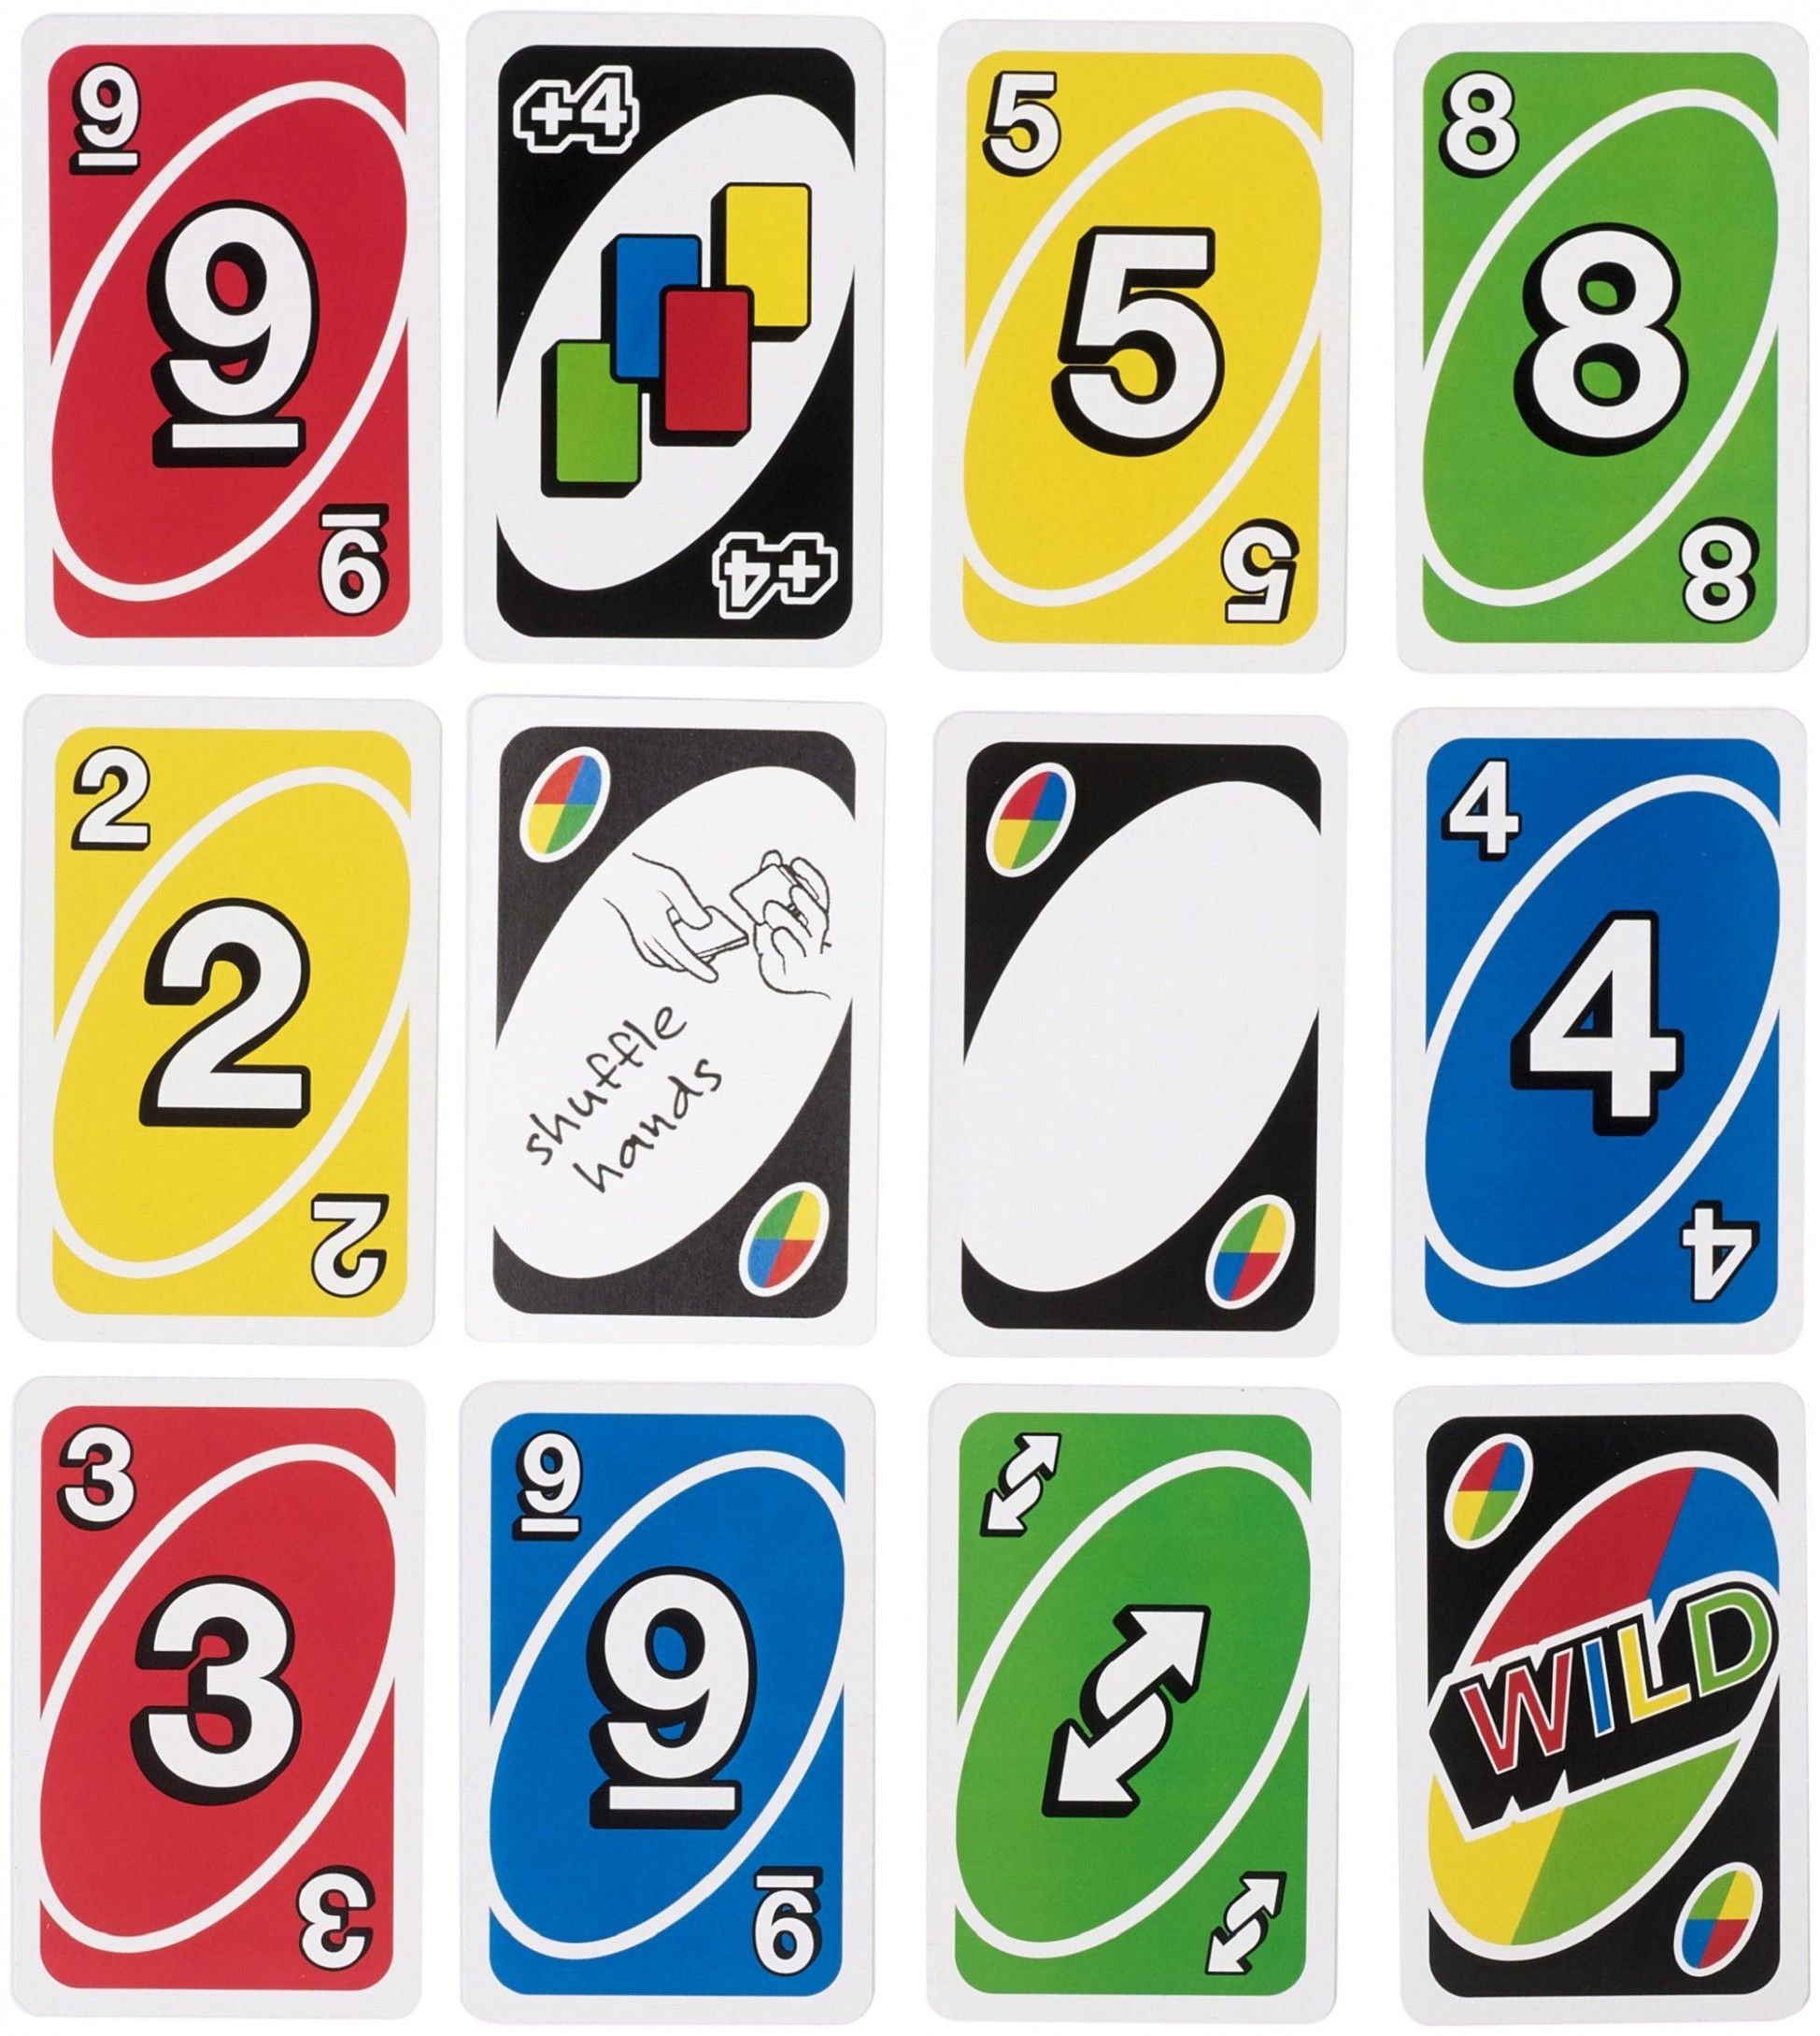 Blank Uno Card Template  Classic card games, Uno card game